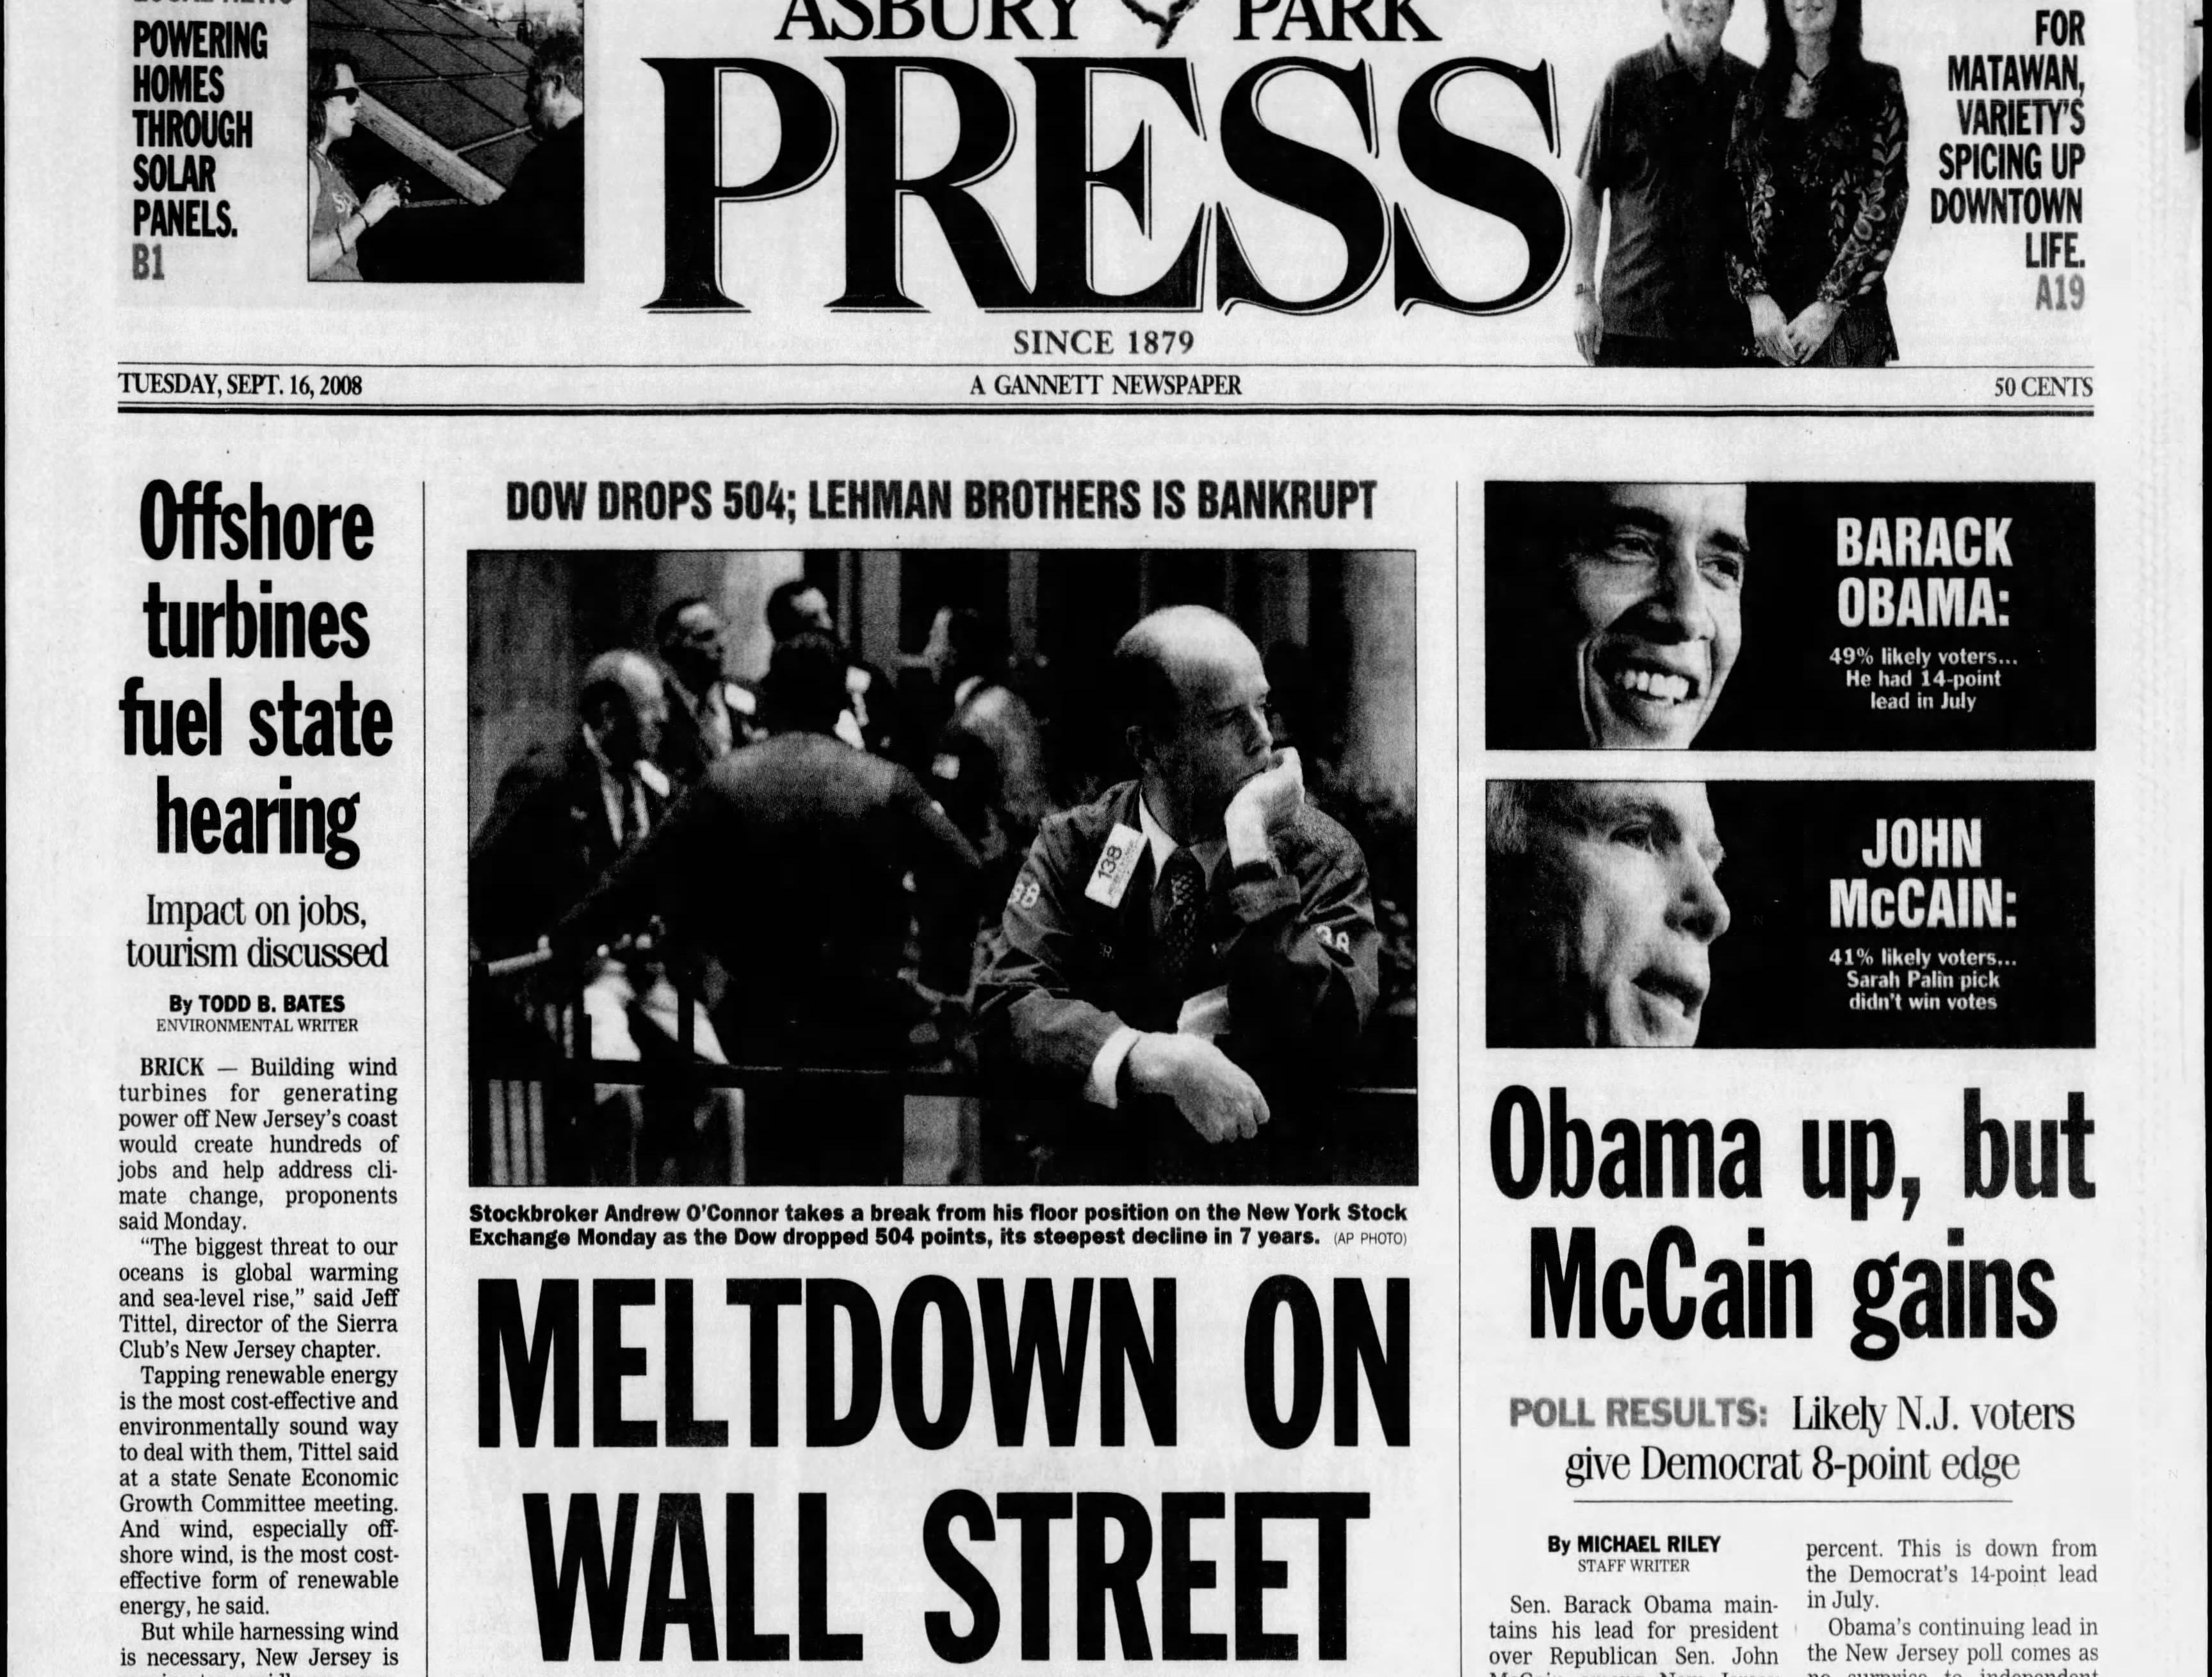 """""""Meltdown on Wall Street"""" as the markets go into a panic in the worst global financial crisis since the Great Depression after Lehman Brothers goes bankrupt, the Federal Reserve declines to guarantee its loans and the Dow Jones drops 504 points. This edition is from Tuesday, Sept. 16, 2008."""